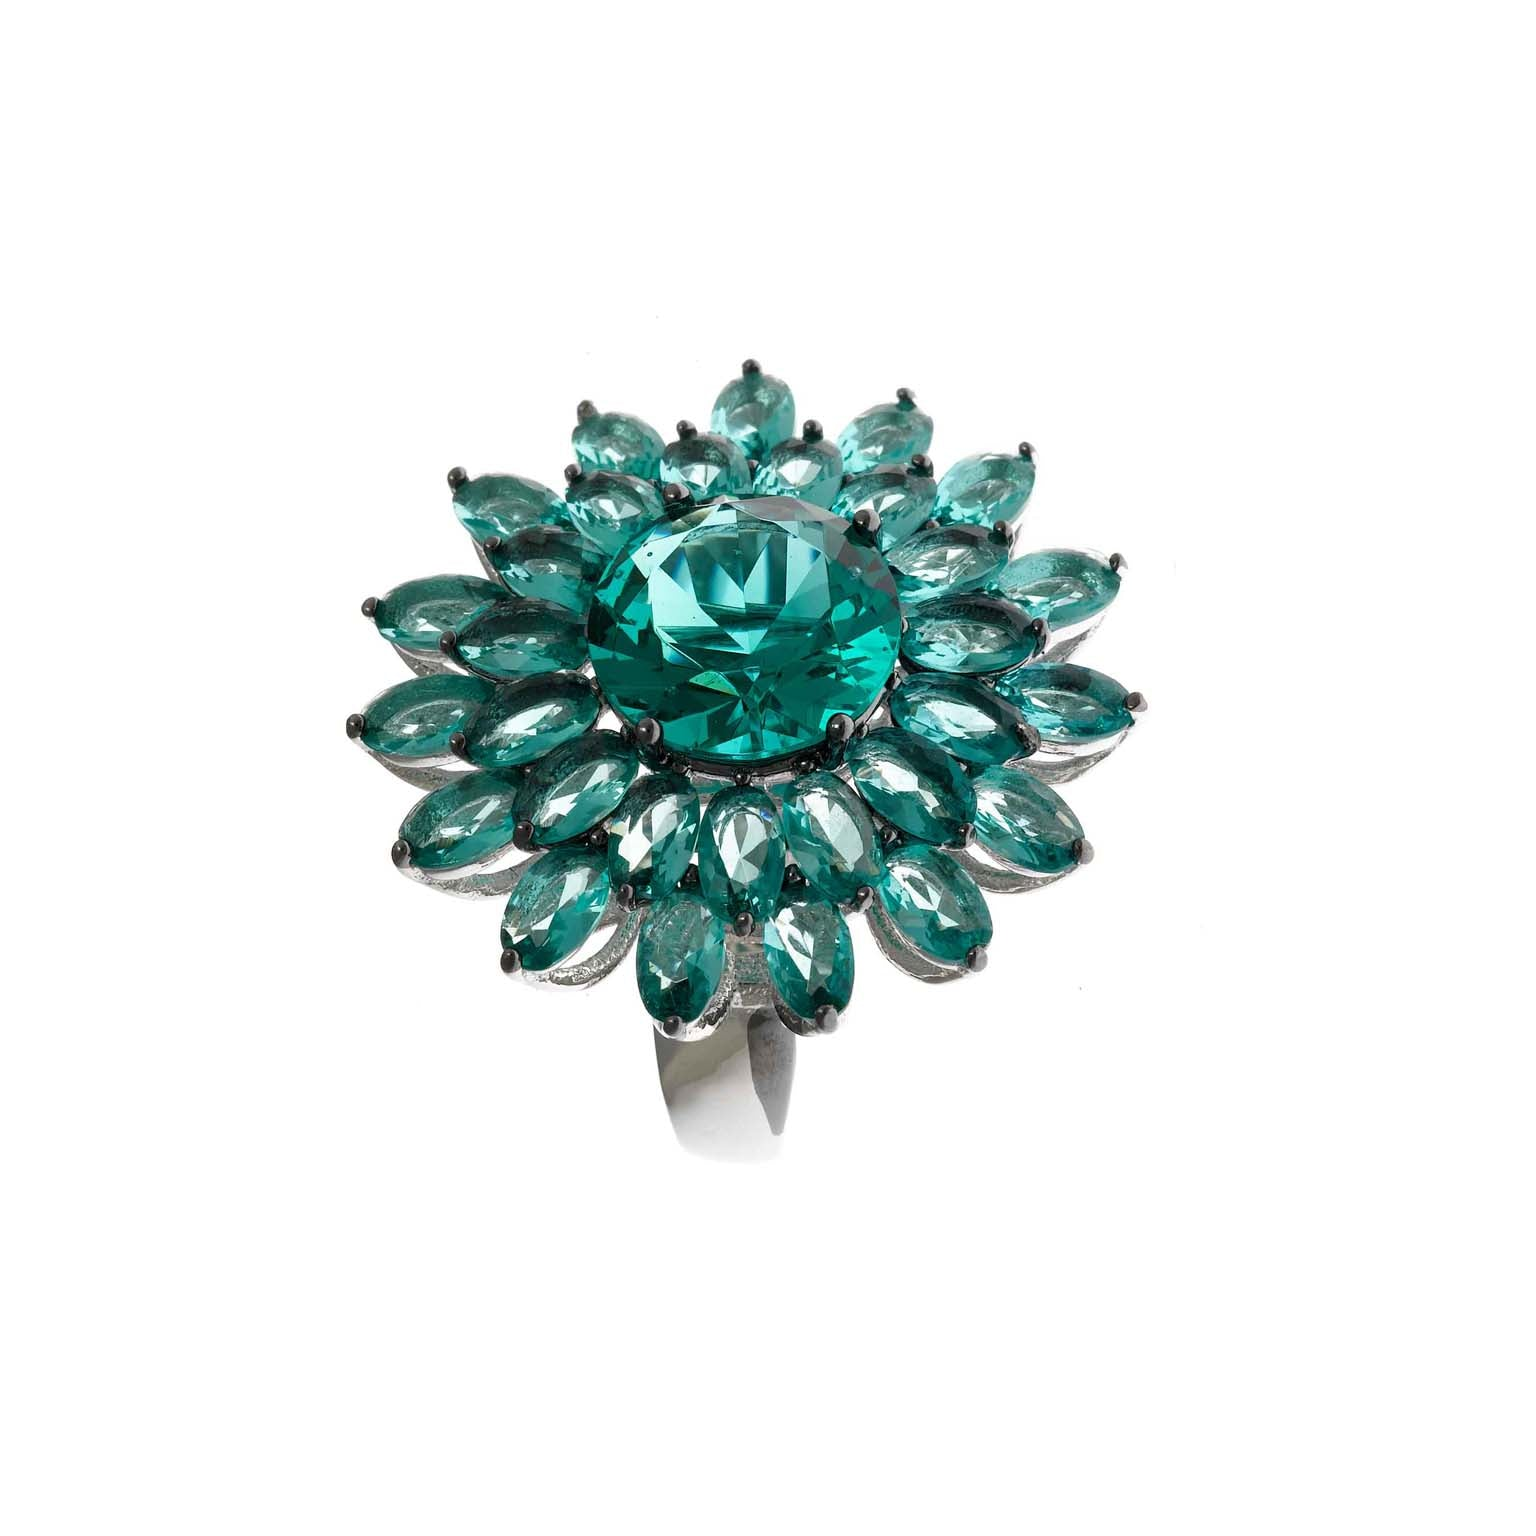 FLOWER STATEMENT RING WITH AQUAMARINE CRYSTALS - china-cabinet.com